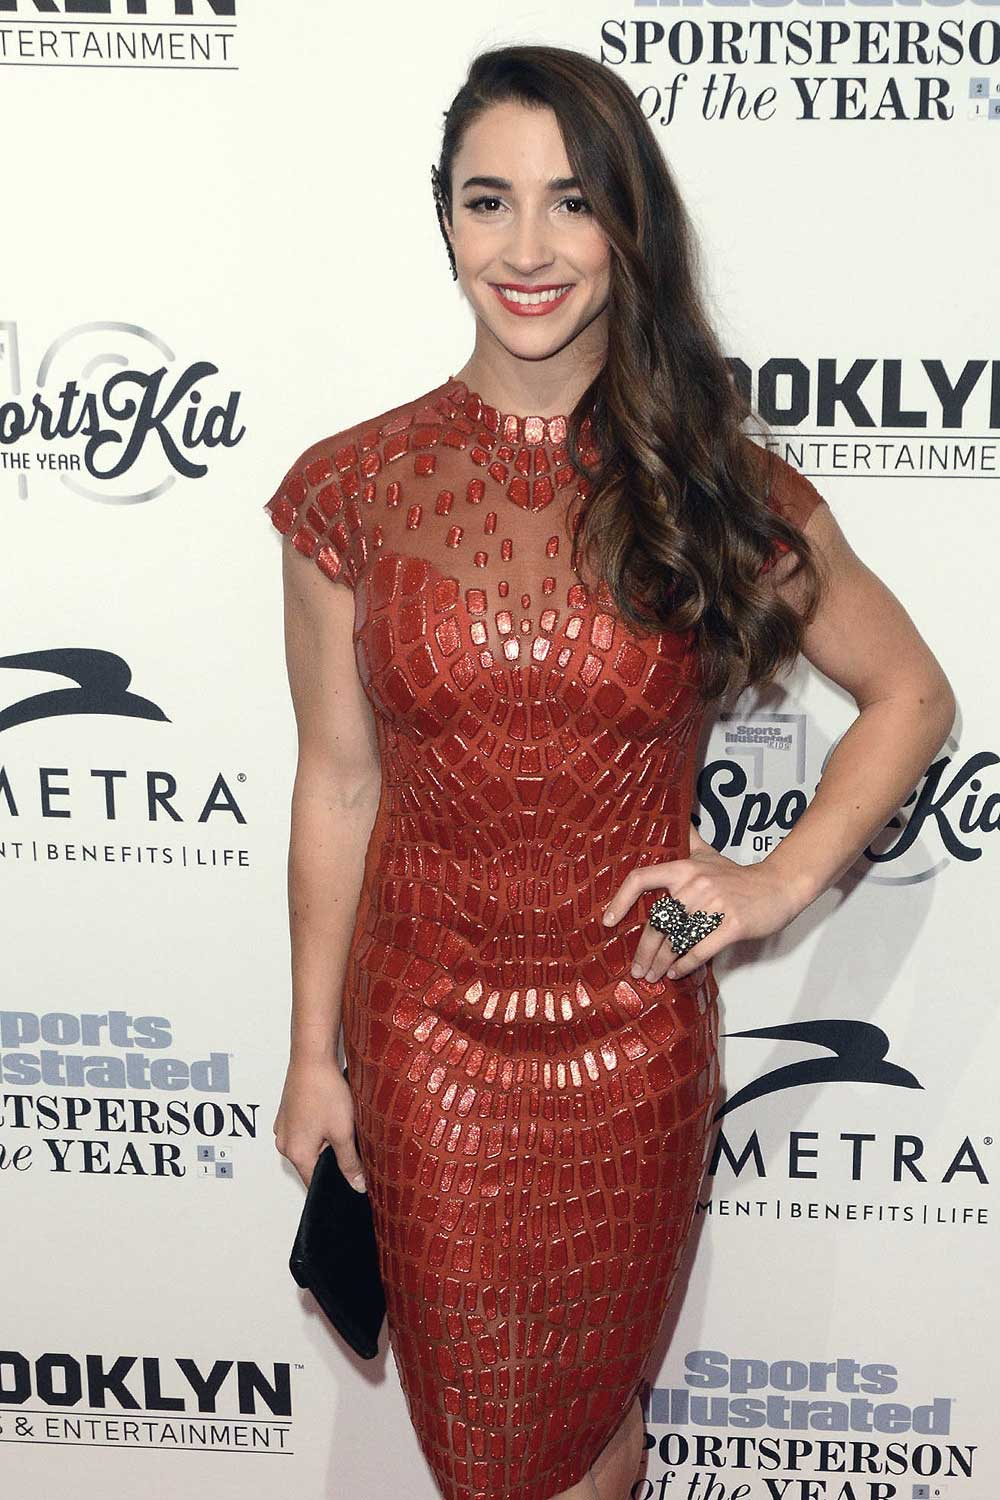 Aly Raisman attends Sports Illustrated Sportsperson of the Year 2016